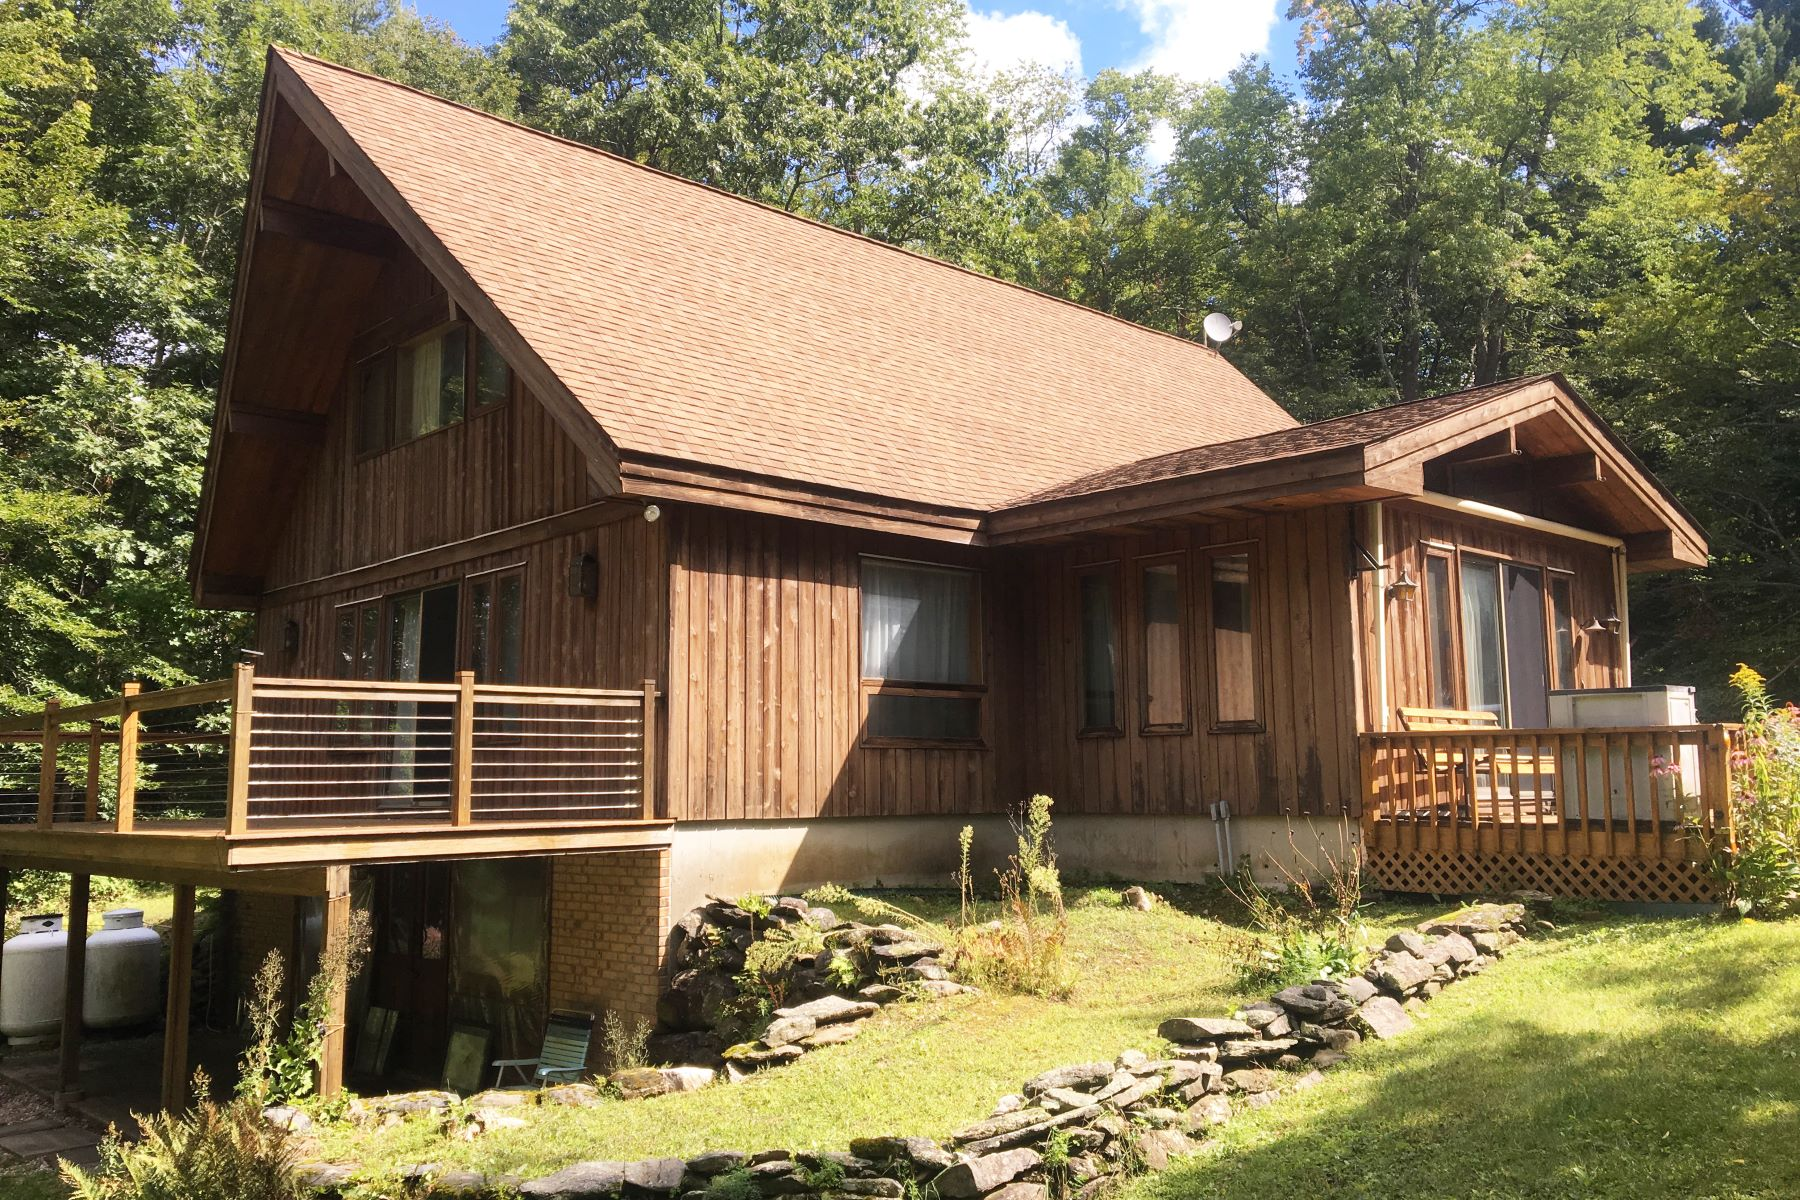 Single Family Home for Sale at A quiet retreat 169 Meekertown Road, Norfolk, Connecticut, 06058 United States